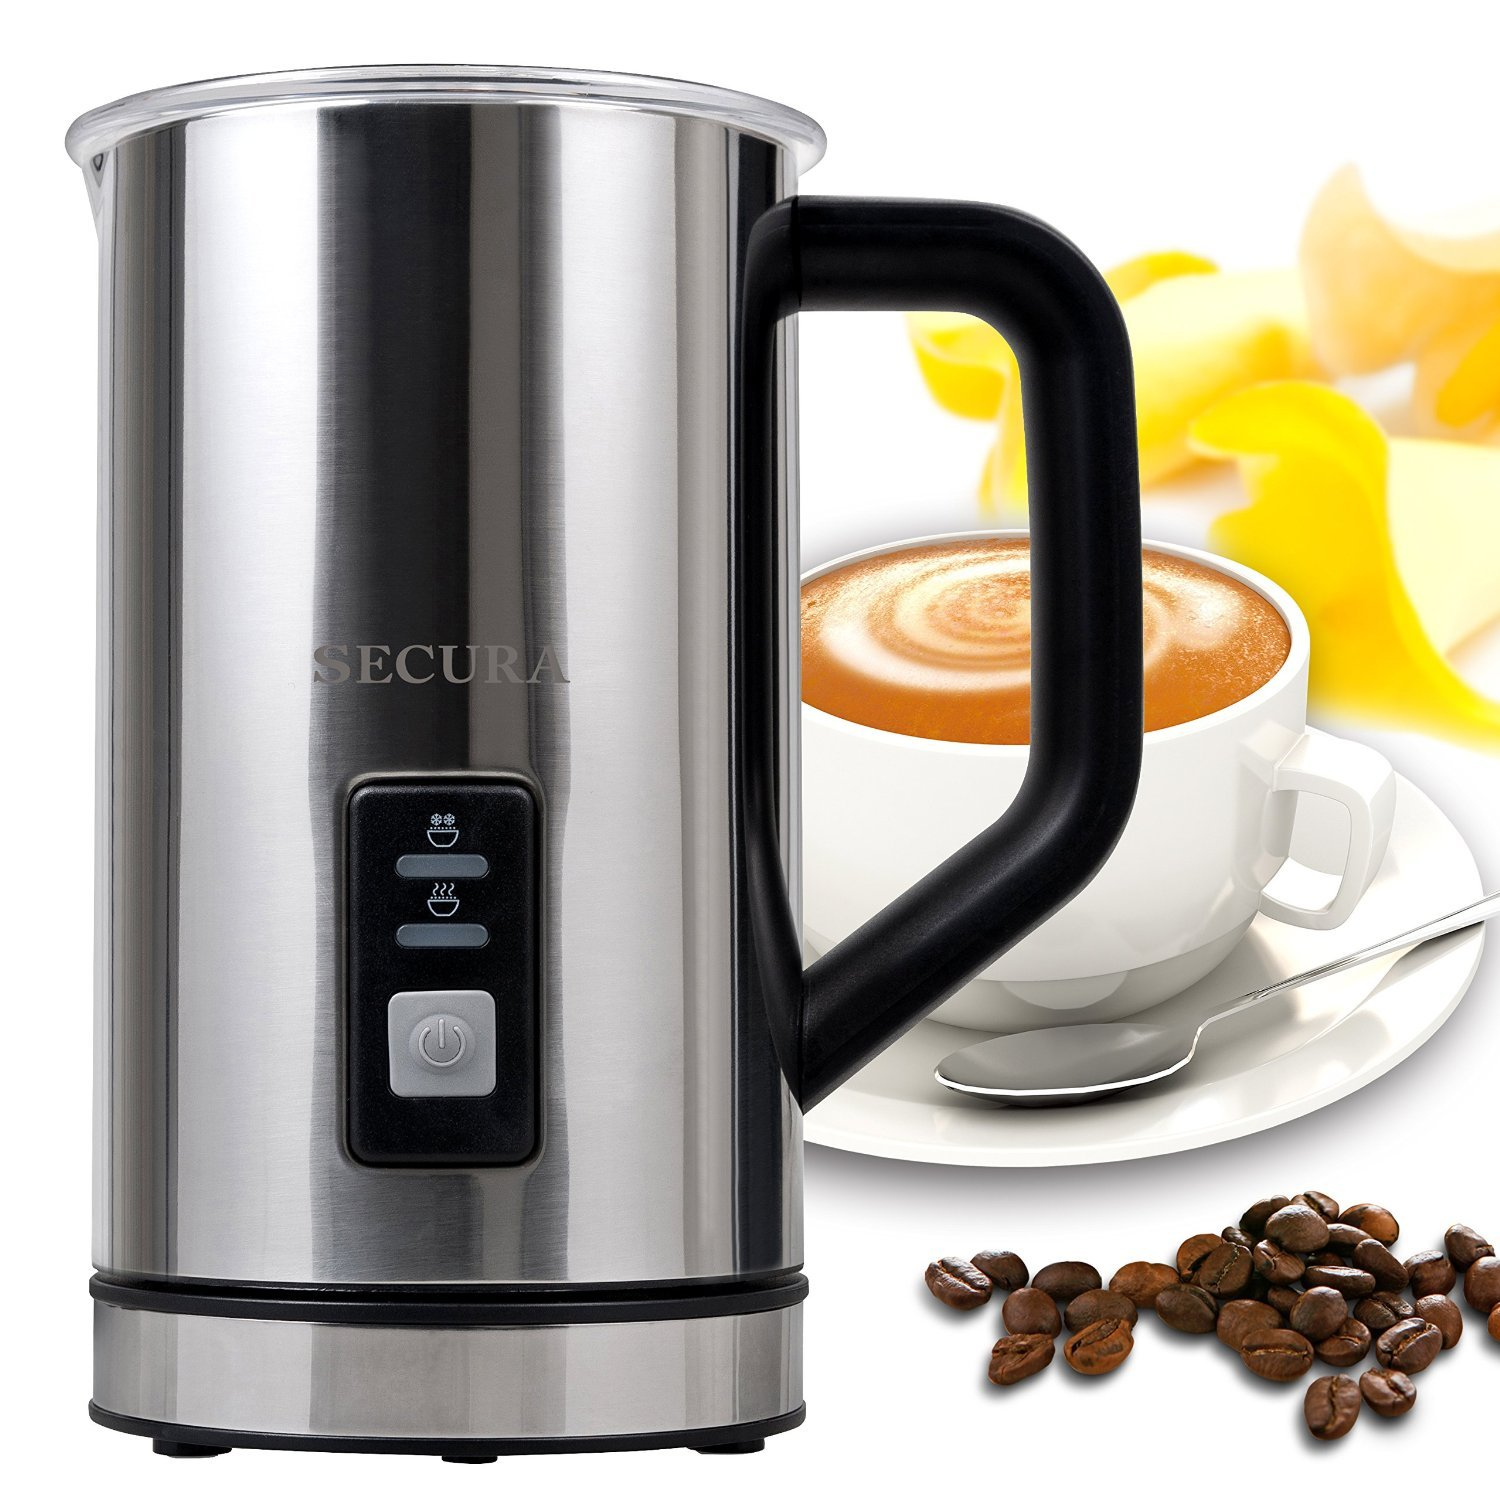 Secura Automatic Electric Milk Frother and Warmer 500ml